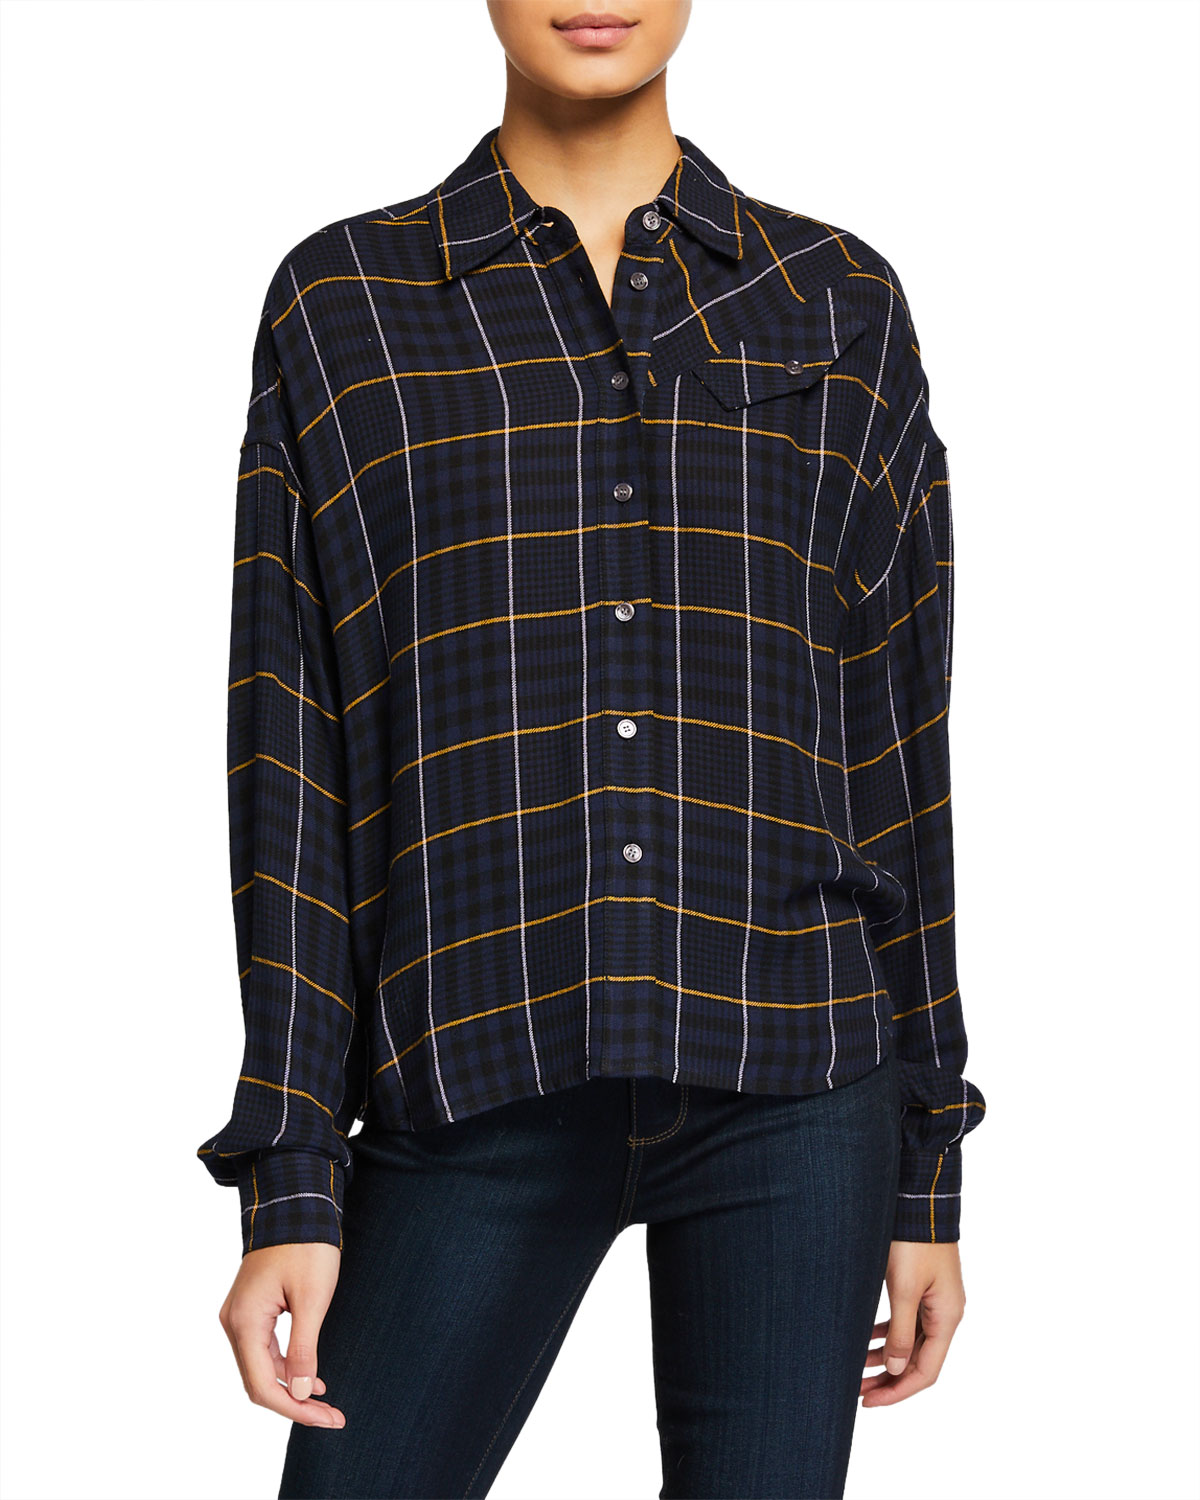 Derek Lam 10 Crosby T-shirts PLAID BUTTON-DOWN LONG-SLEEVE SHIRT